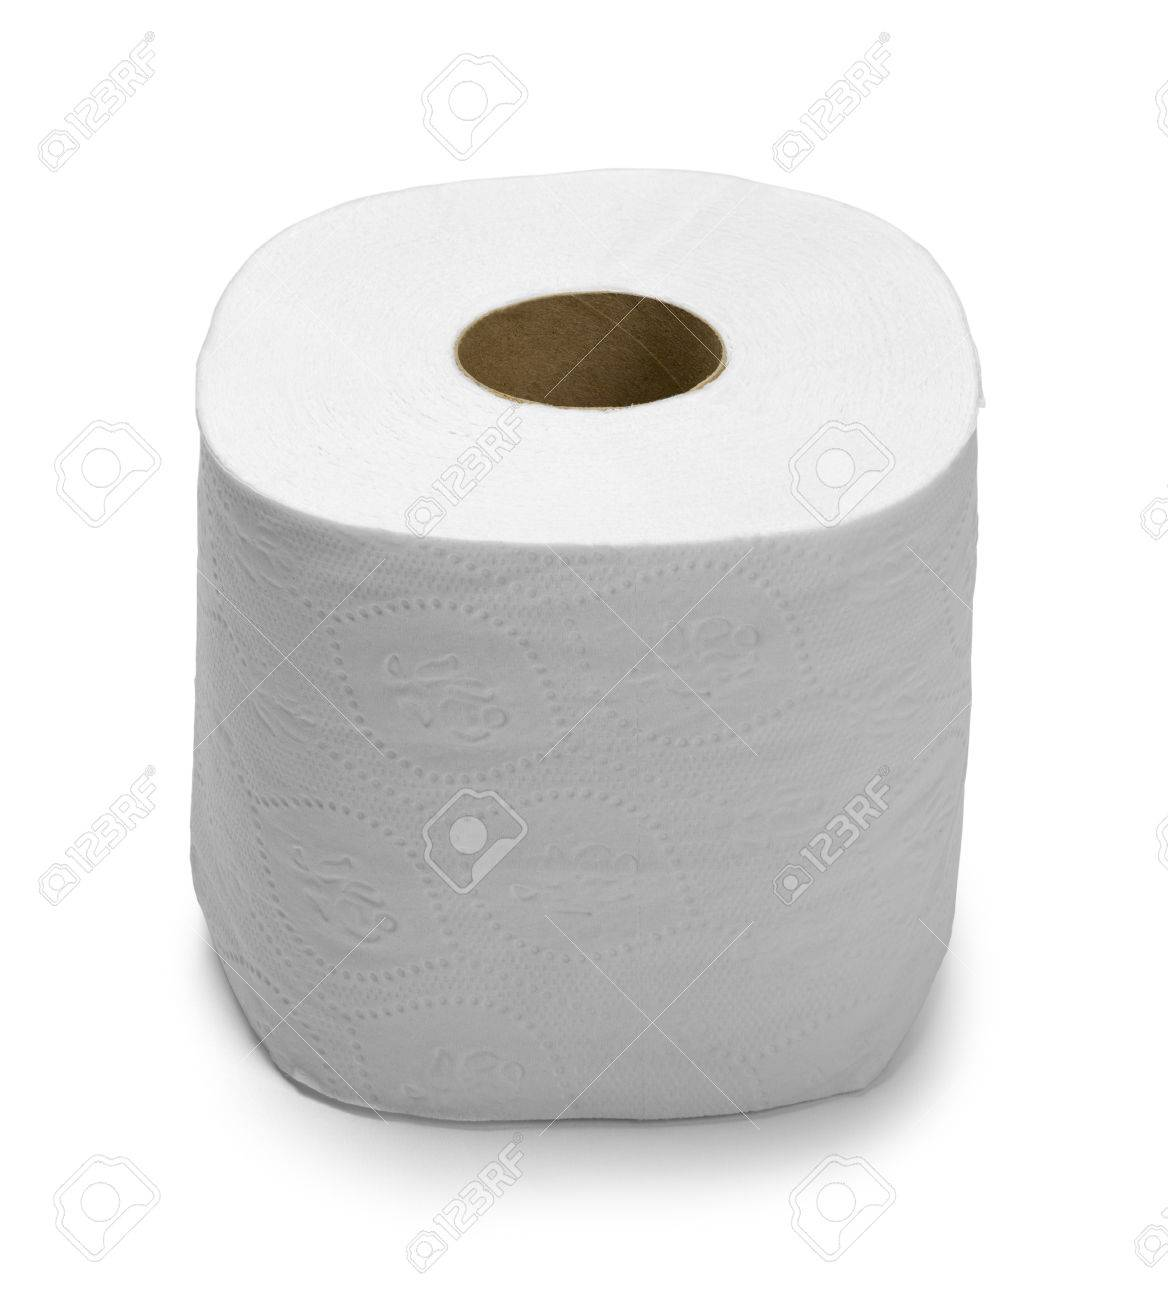 New Large Roll Of Toilet Paper Isolated On White Stock Photo